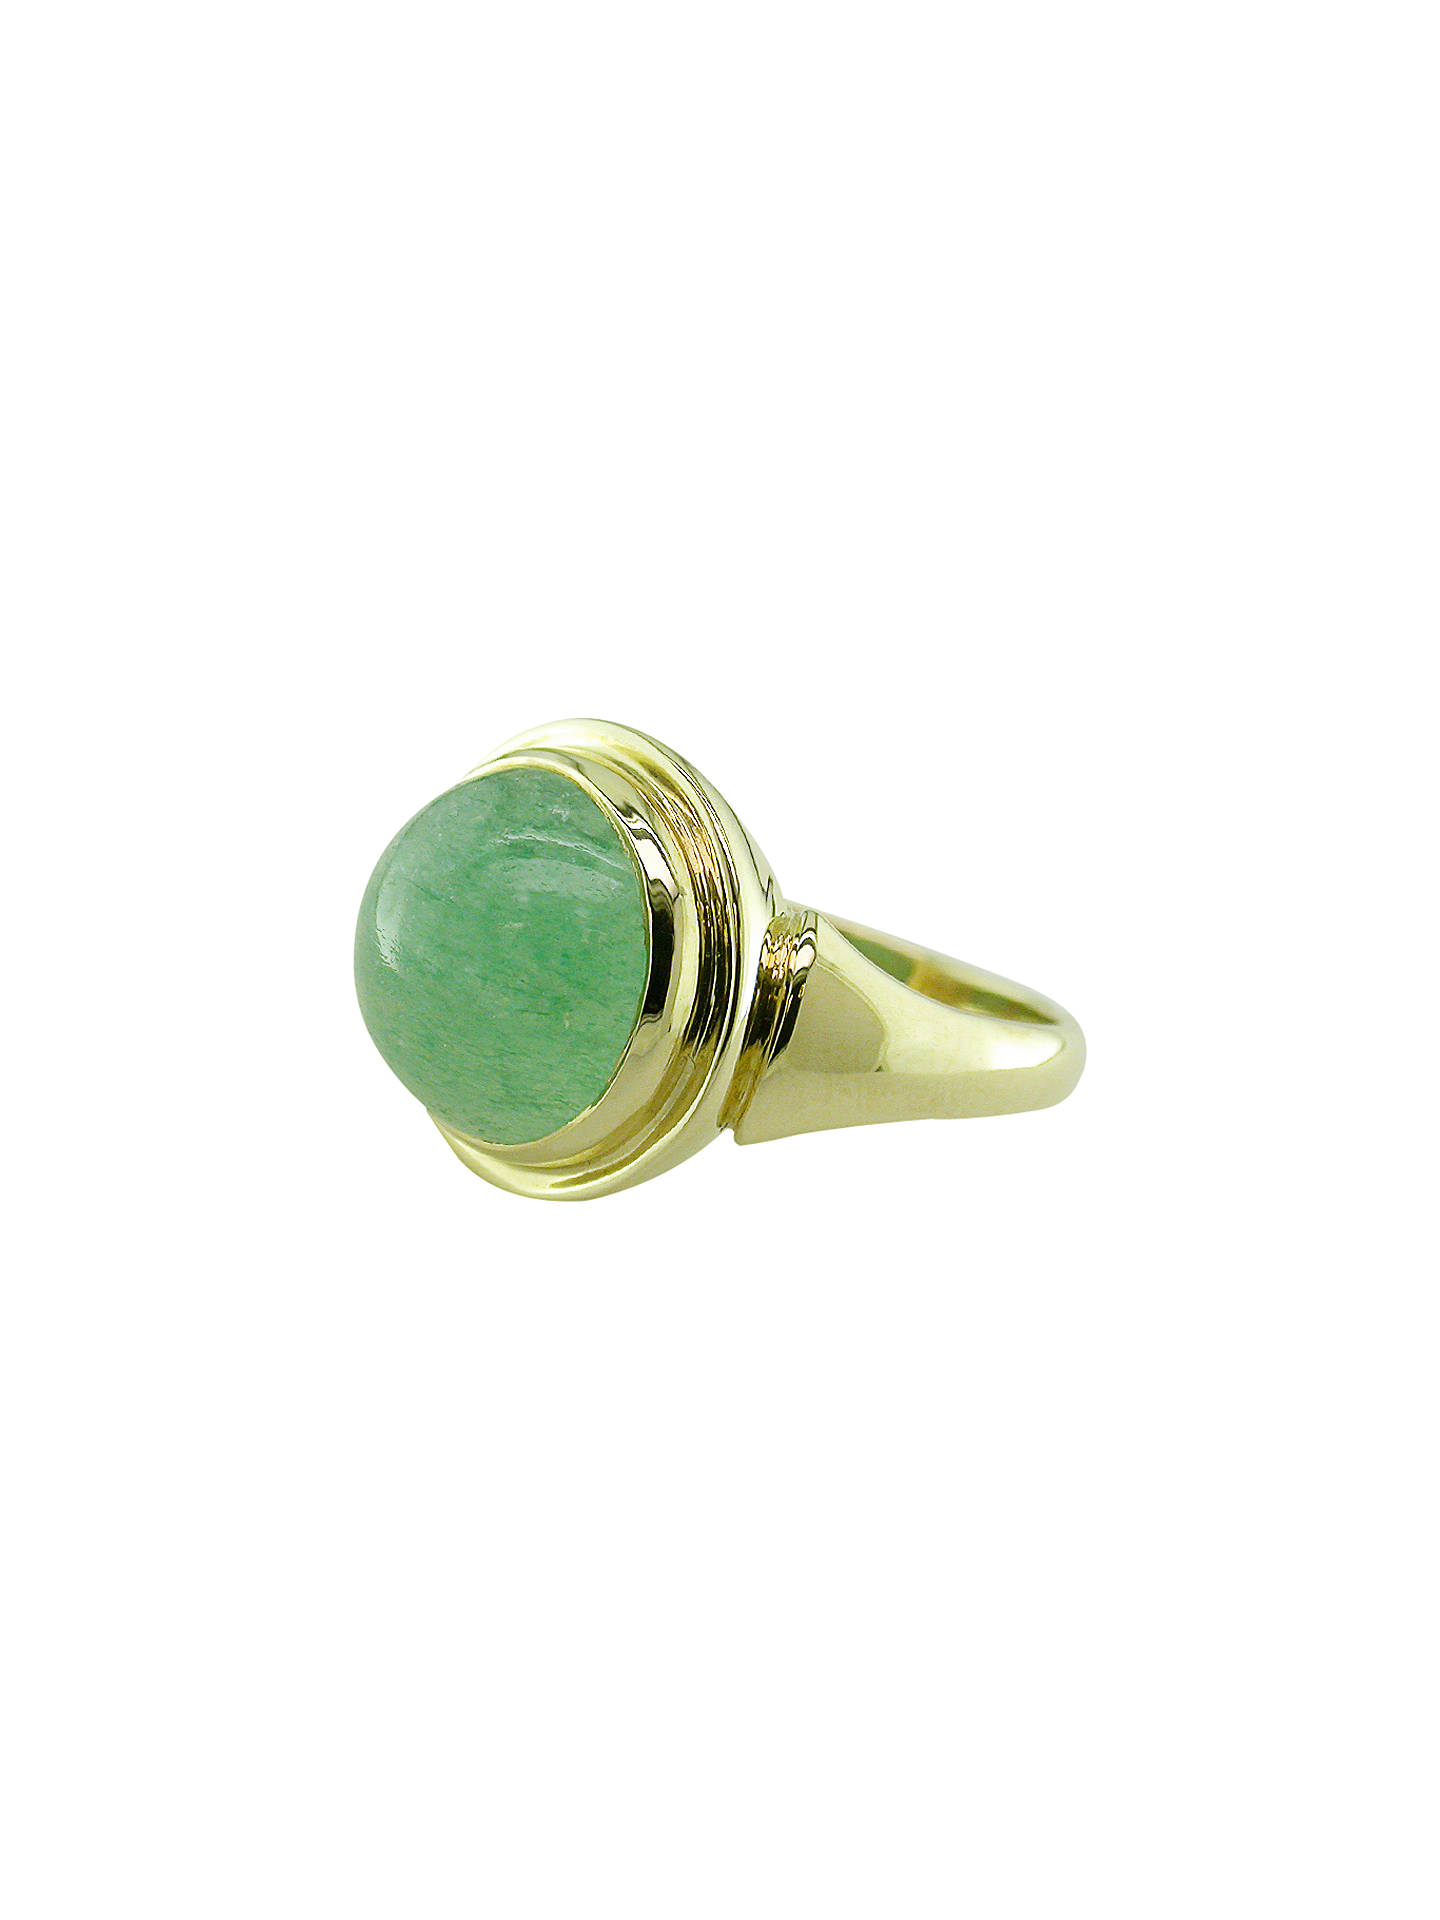 Buy London Road Sloane 9ct Yellow Gold Green Cocktail Ring, Aventurine Online at johnlewis.com